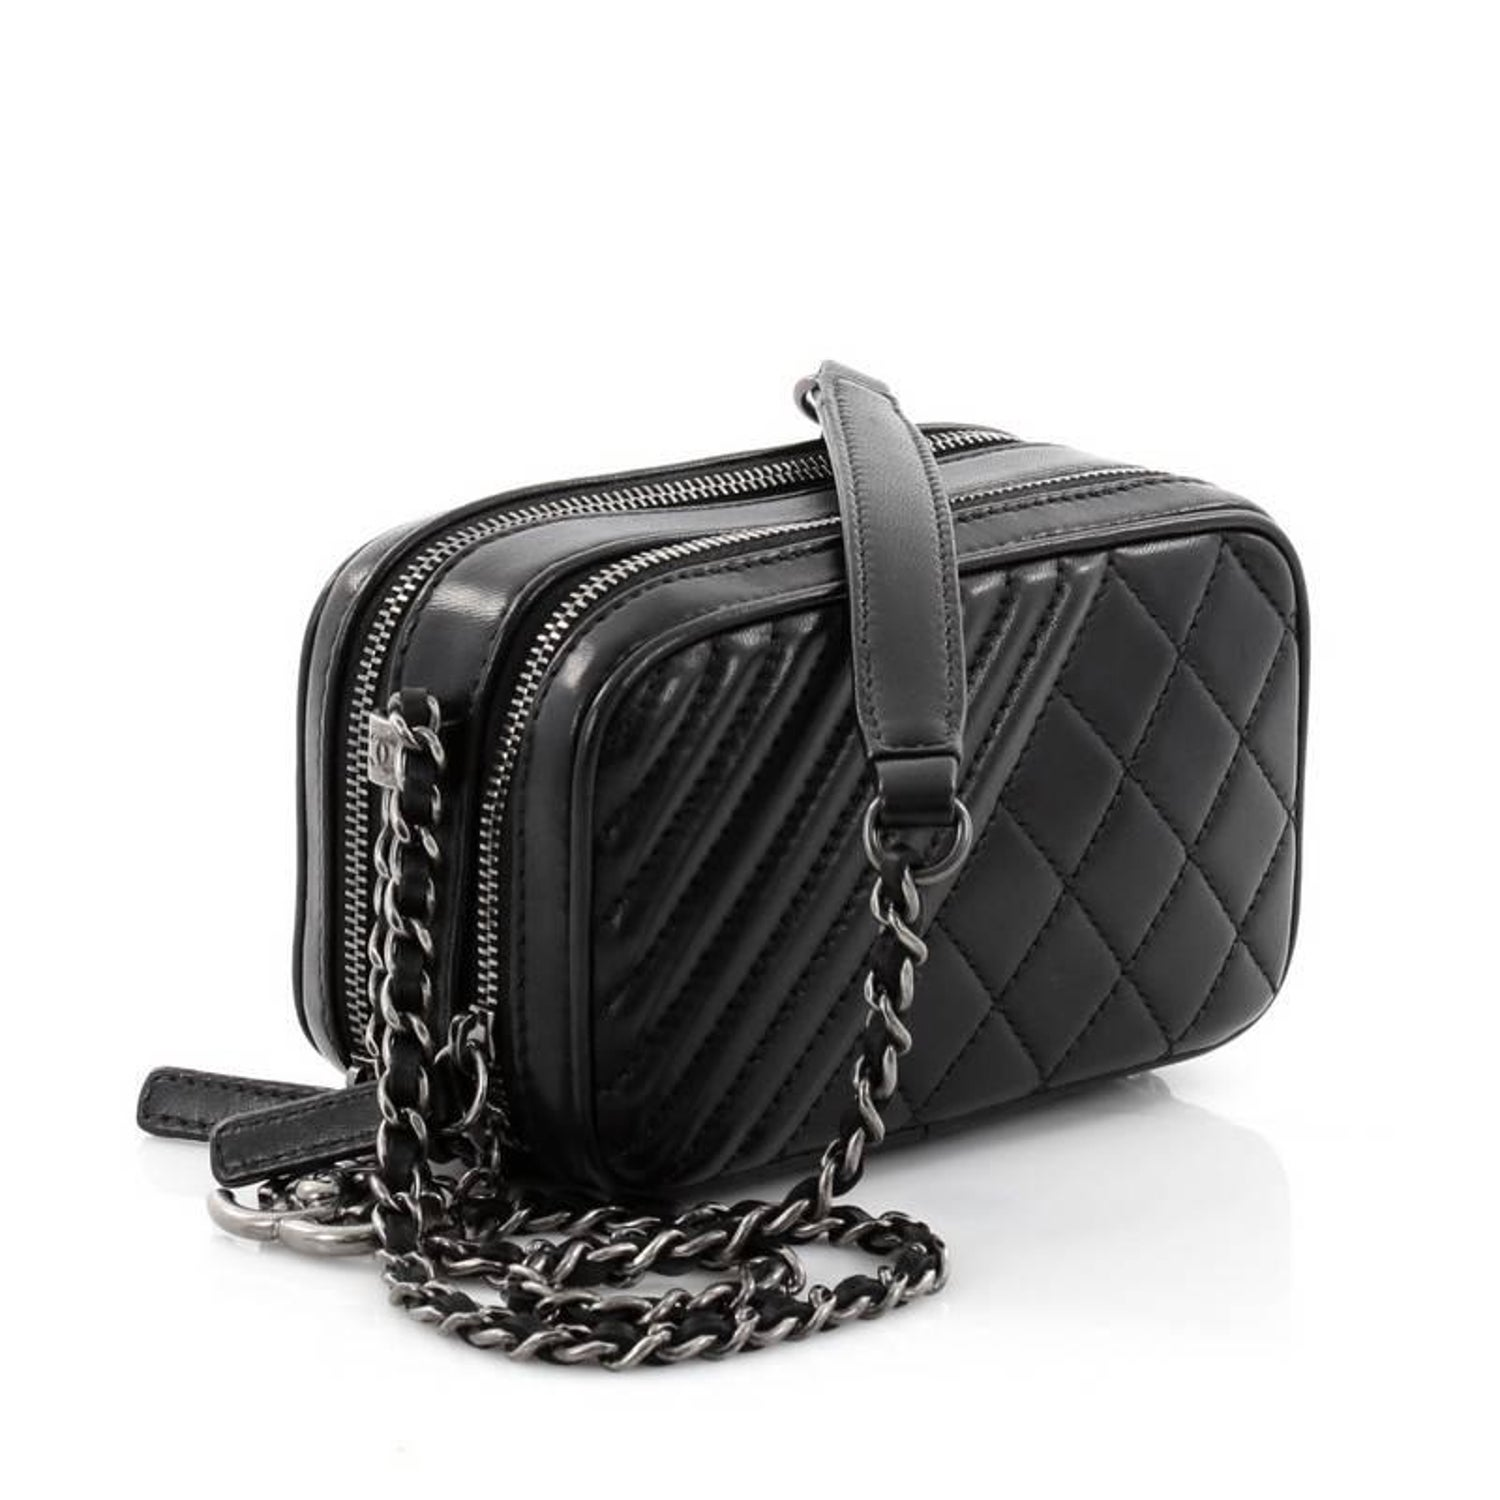 c11f3a3b881d Chanel Coco Boy Camera Bag Quilted Leather Mini at 1stdibs